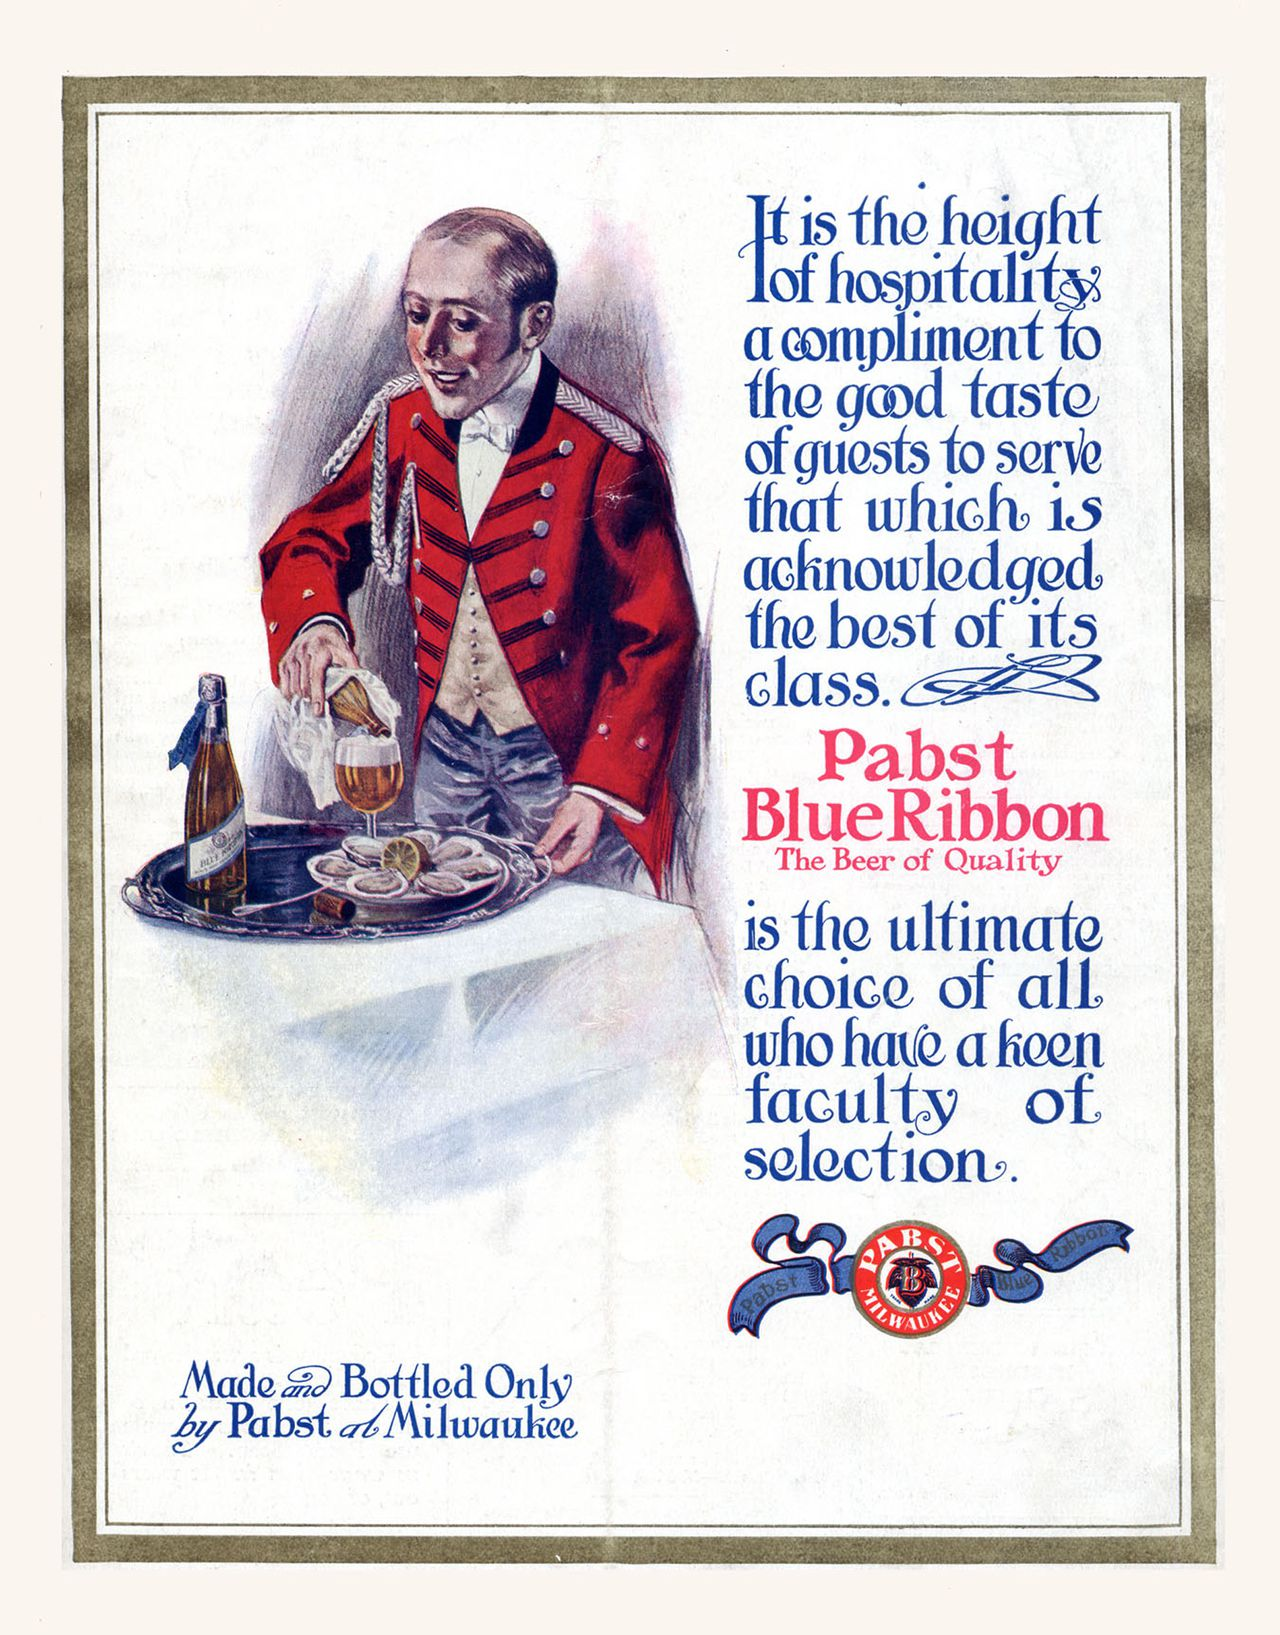 Het biermerk Pabst Blue Ribbon, dat nu populair is in de VS, publiceerde in 1911 deze advertentie. Pabst Blue Ribbon is the most famous product of the Pabst Brewing Company. Originally called Best Select, and then Pabst Select, the current name came from the blue ribbons that used to be tied around the bottle neck, a practice that ran from 1882 until 1916.